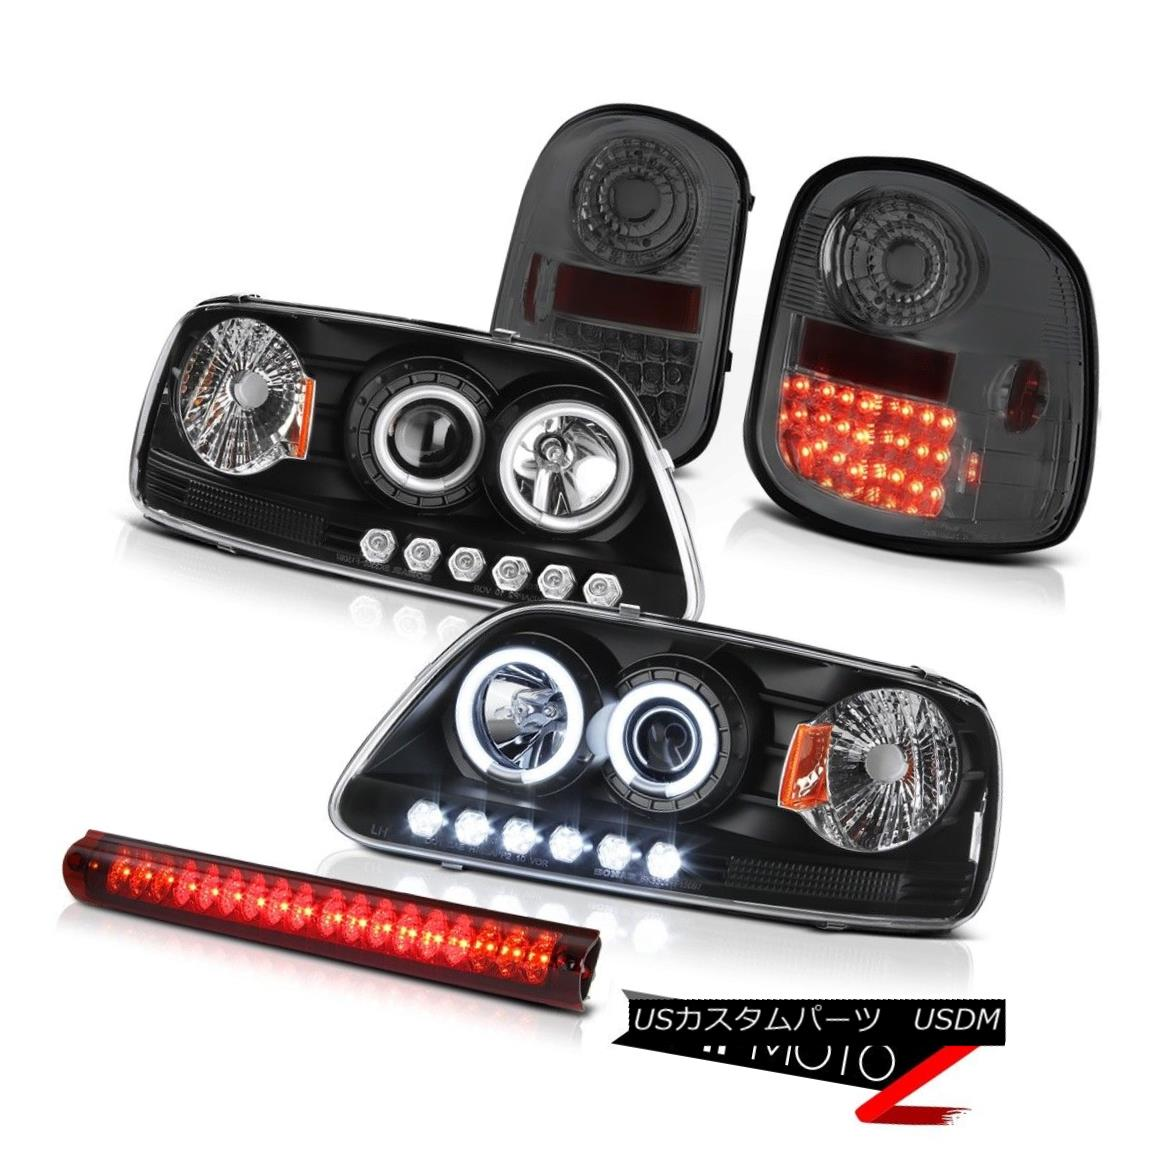 テールライト Angel Eye CCFL Headlamps Smoke LED Tail Lights 3rd Brake 97-03 F150 Flareside エンジェルアイCCFLヘッドランプスモークLEDテールライト3rdブレーキ97-03 F150 Flareside